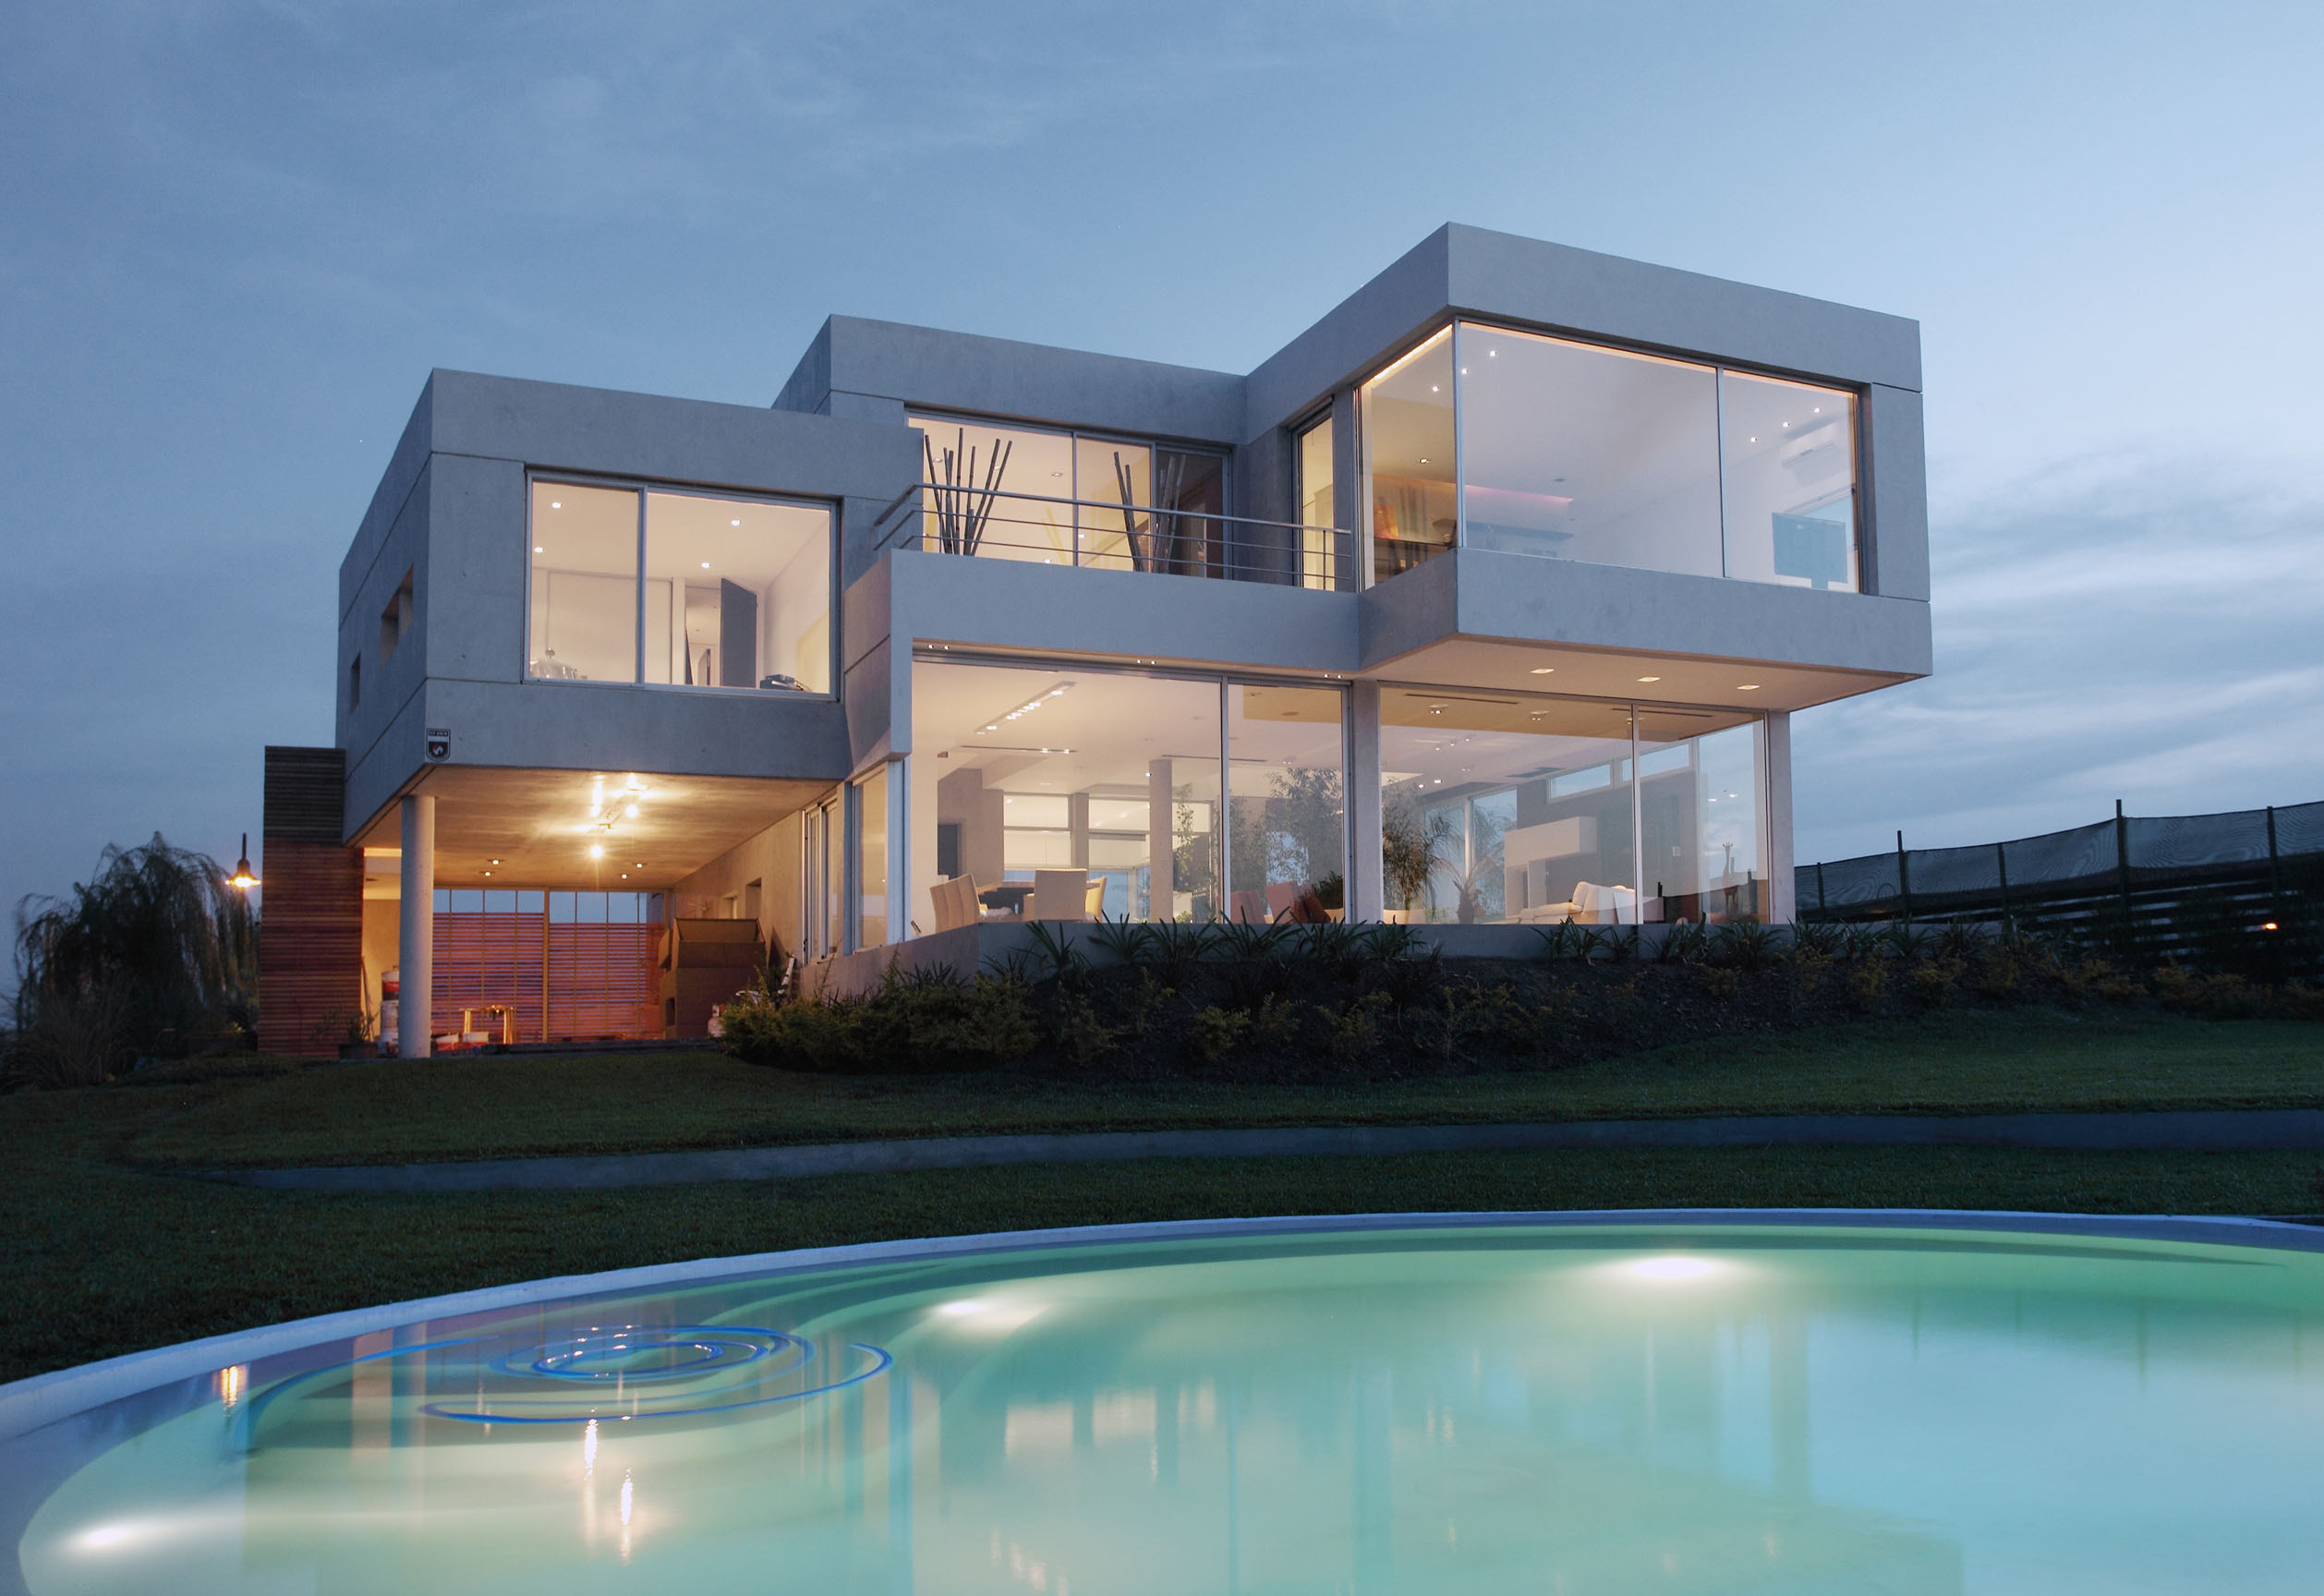 cube-shaped structures, with large windows, and white panelling, forming a house, postmodern architecture, near a blue swimming pool